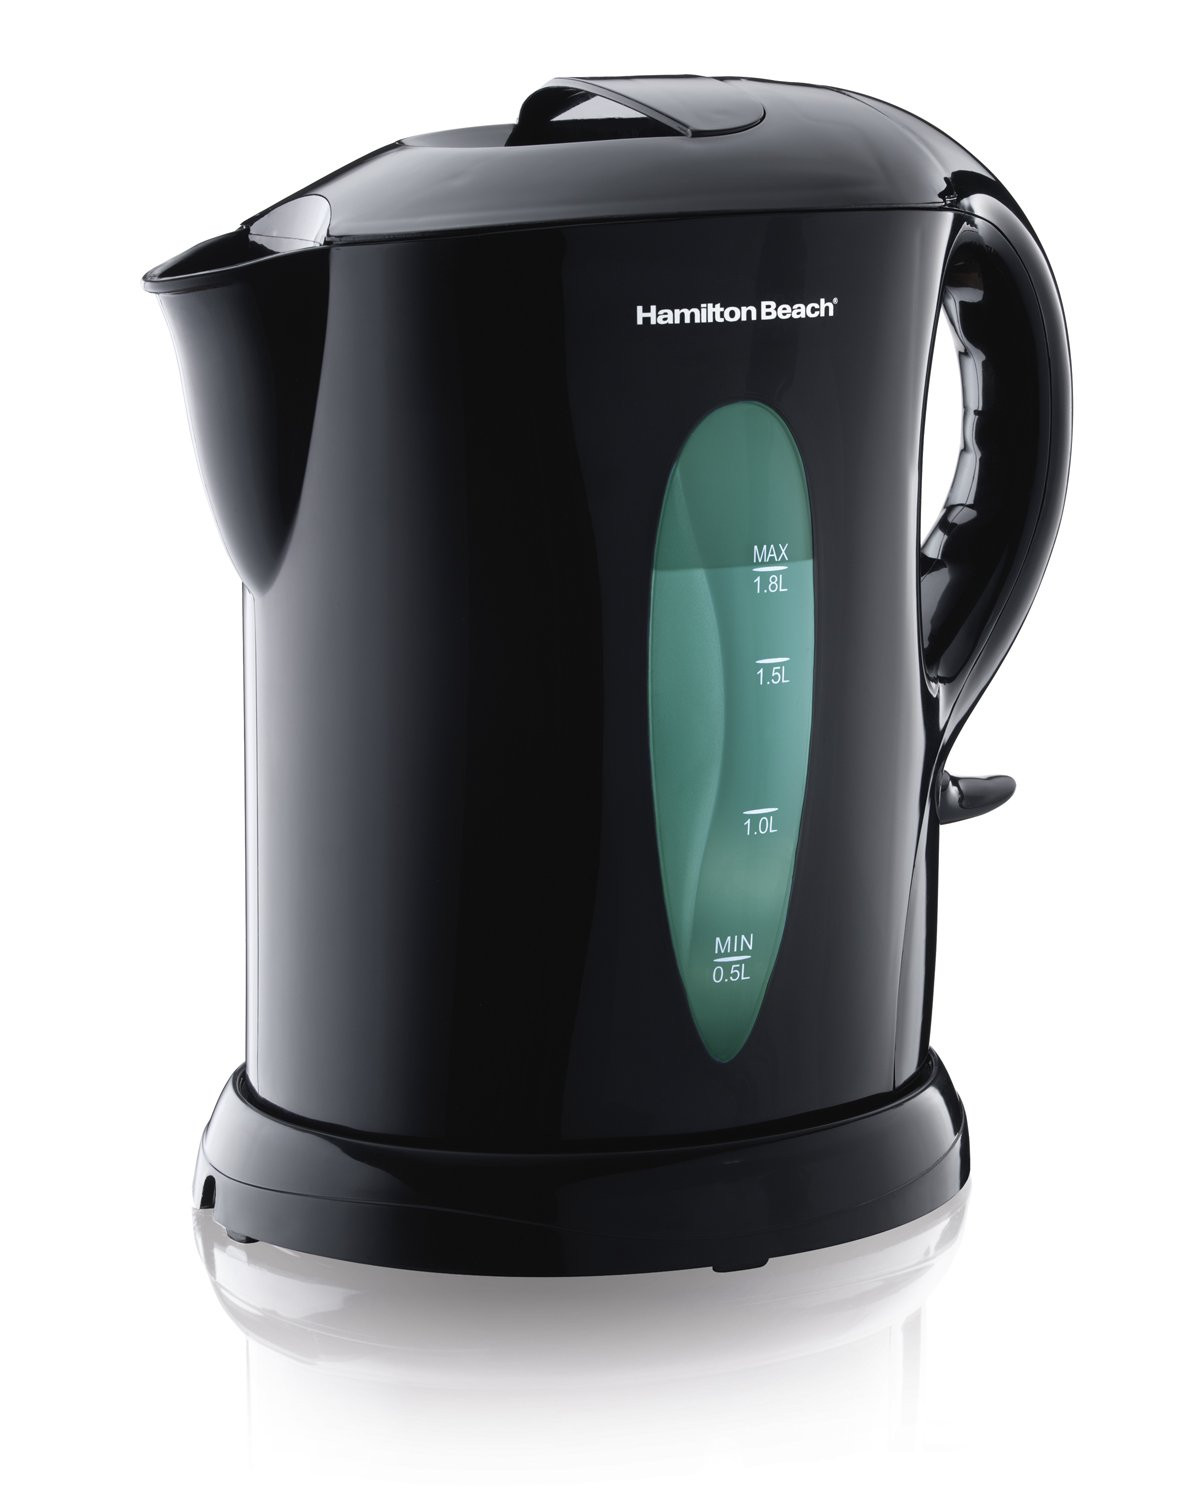 Hamilton beach cordless electric kettle liter water